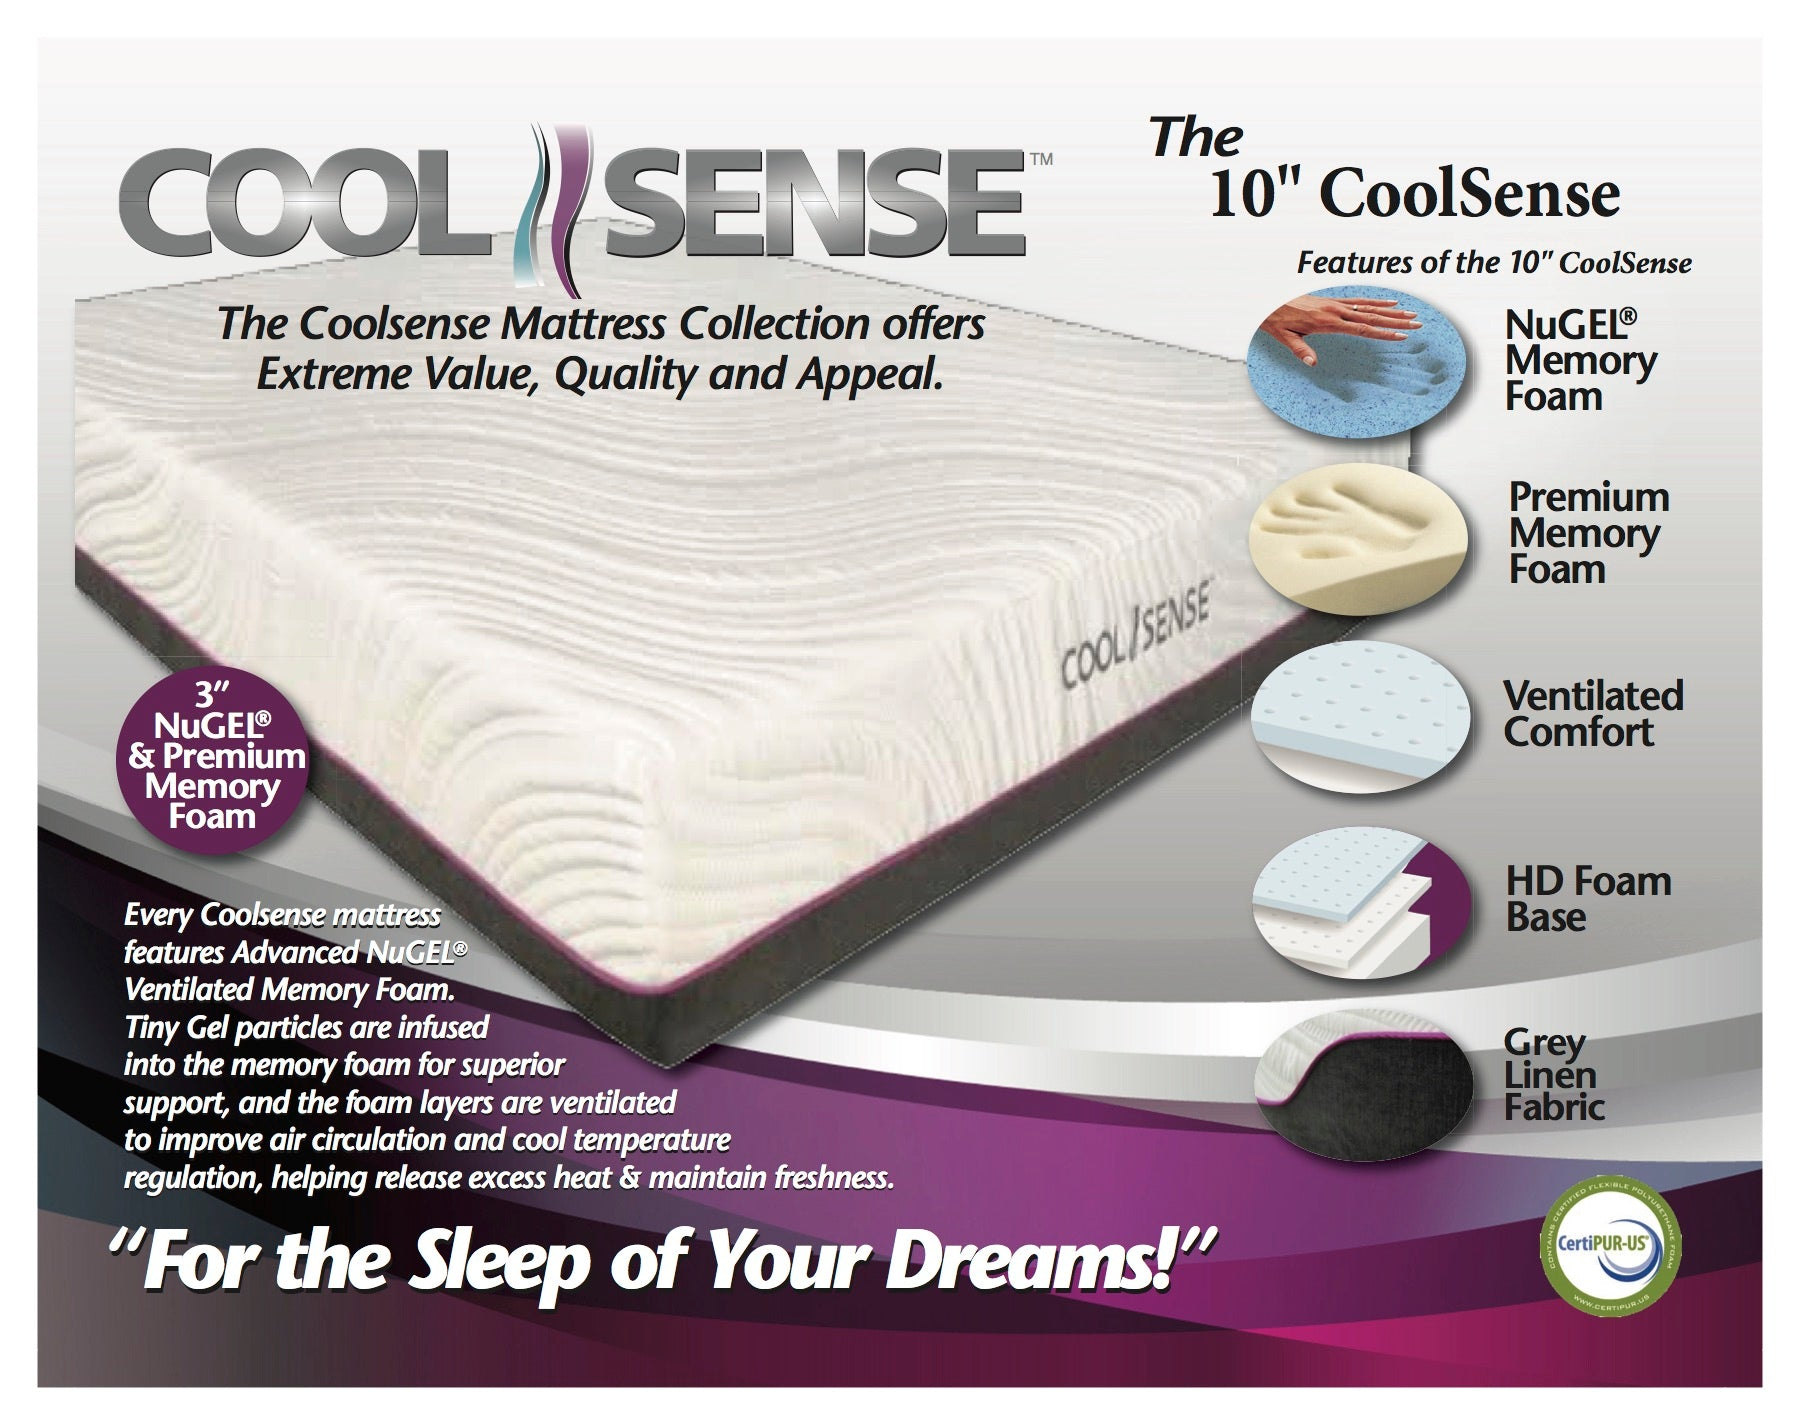 "The 10"" CoolSense"